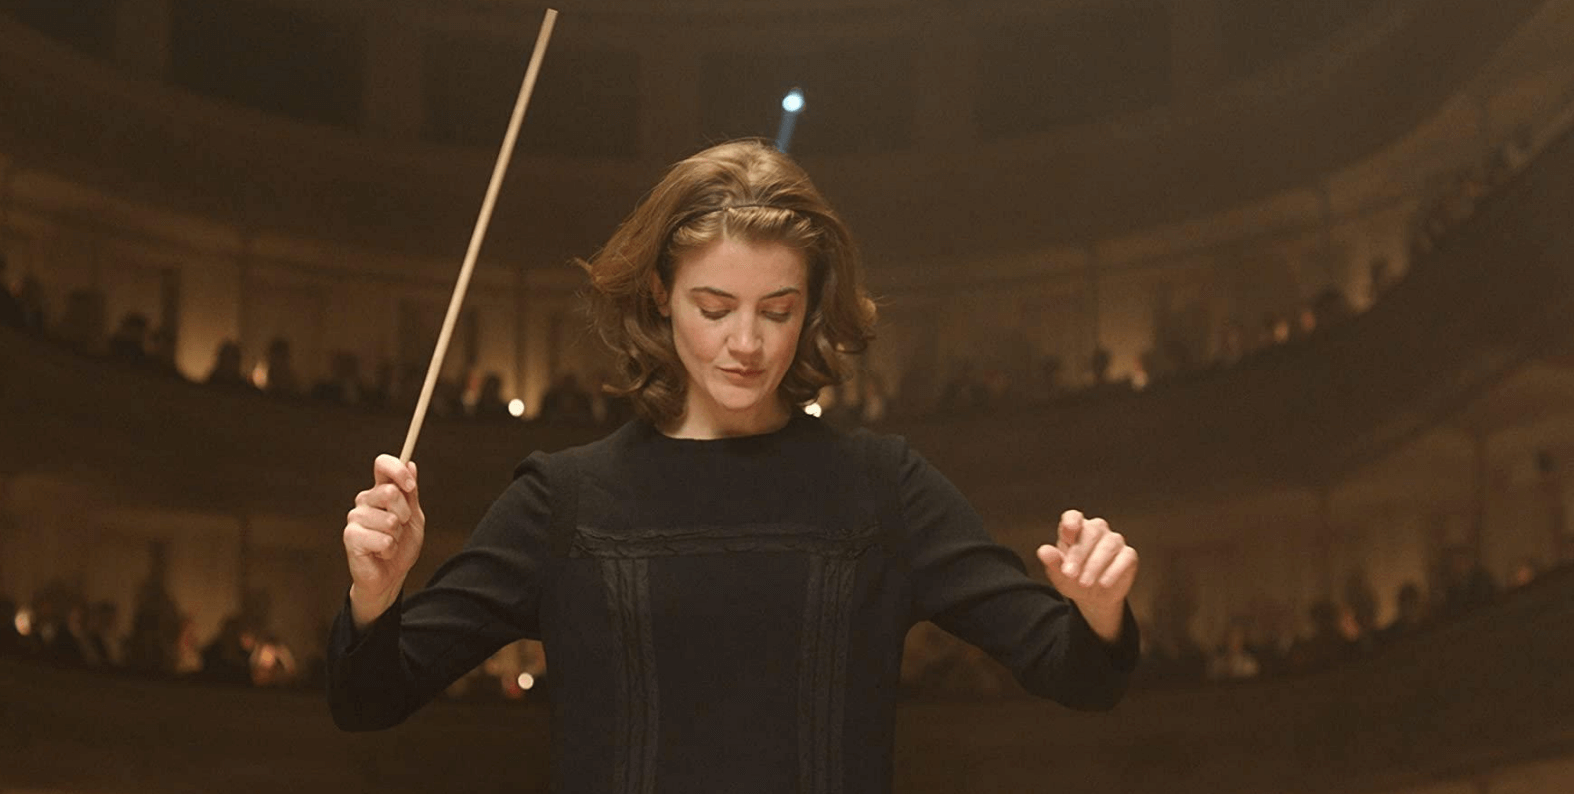 the-conductor